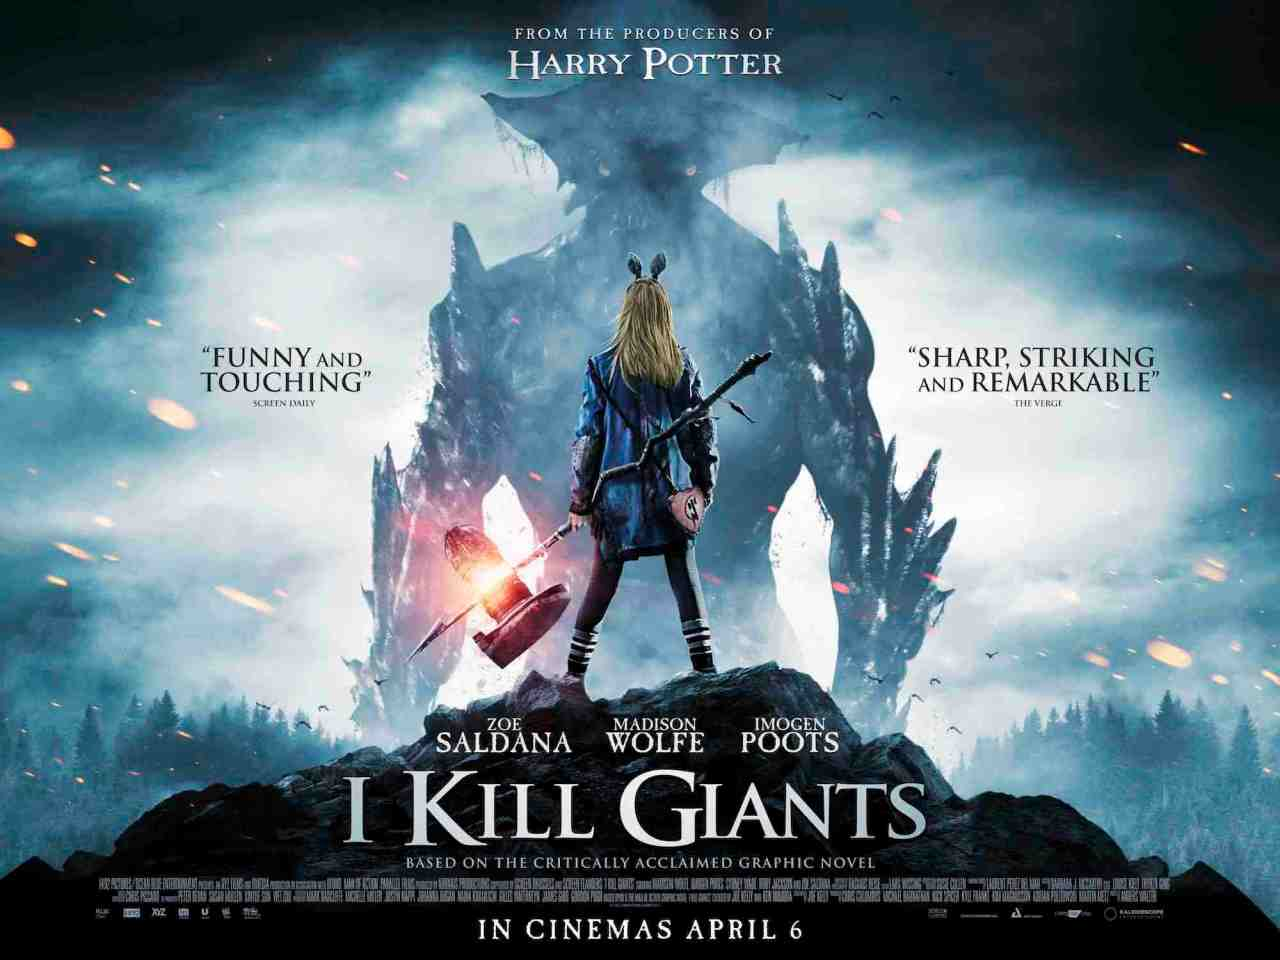 I_KILL_GIANTS_QUAD - Copy